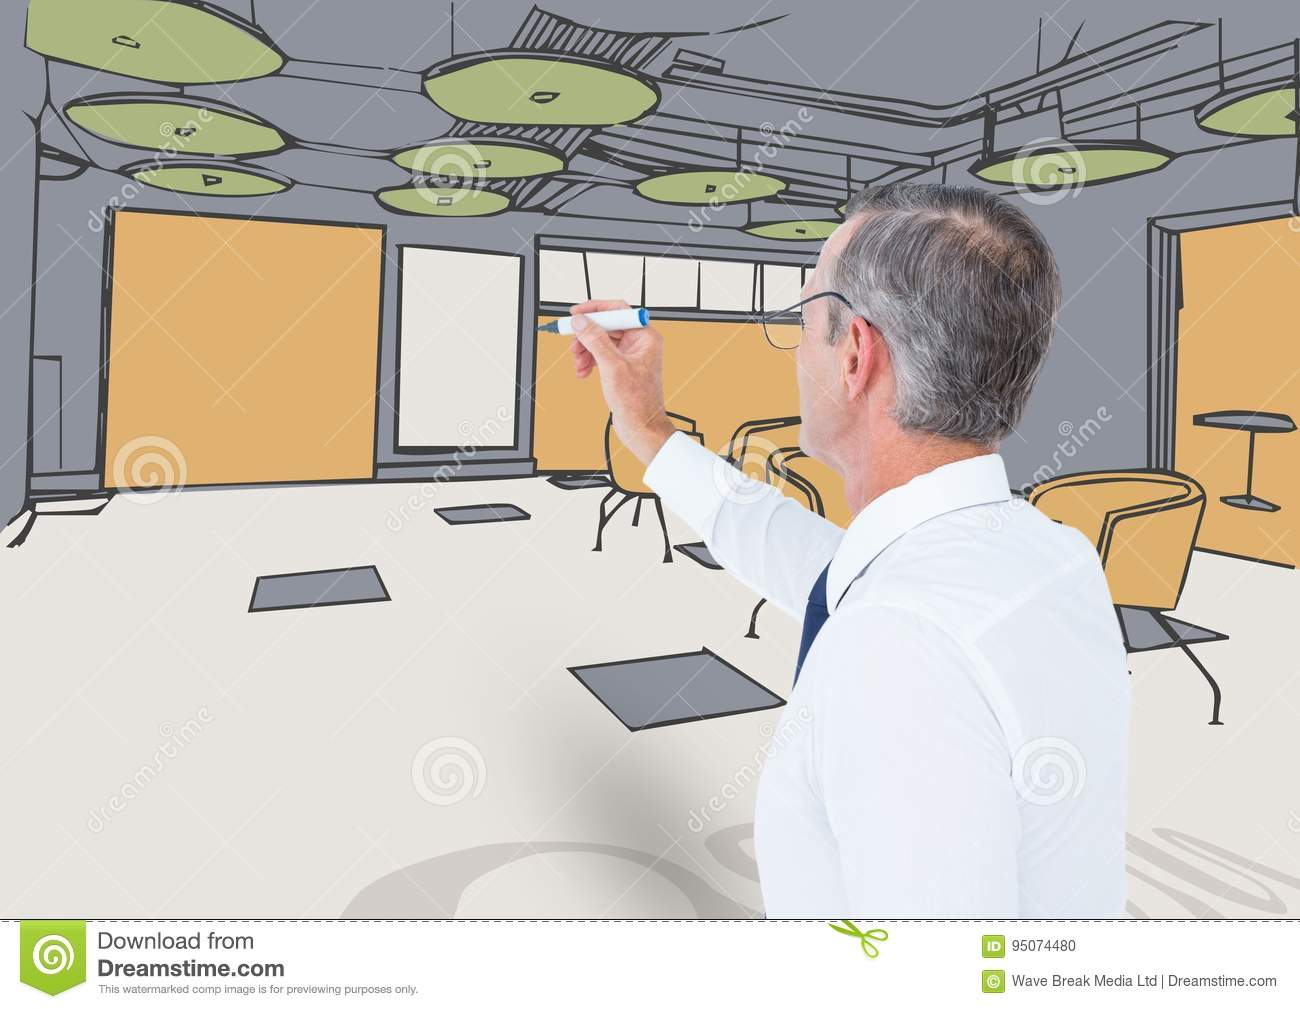 Drawing Lines In Office : Business senior man drawing office lines with color stock photo